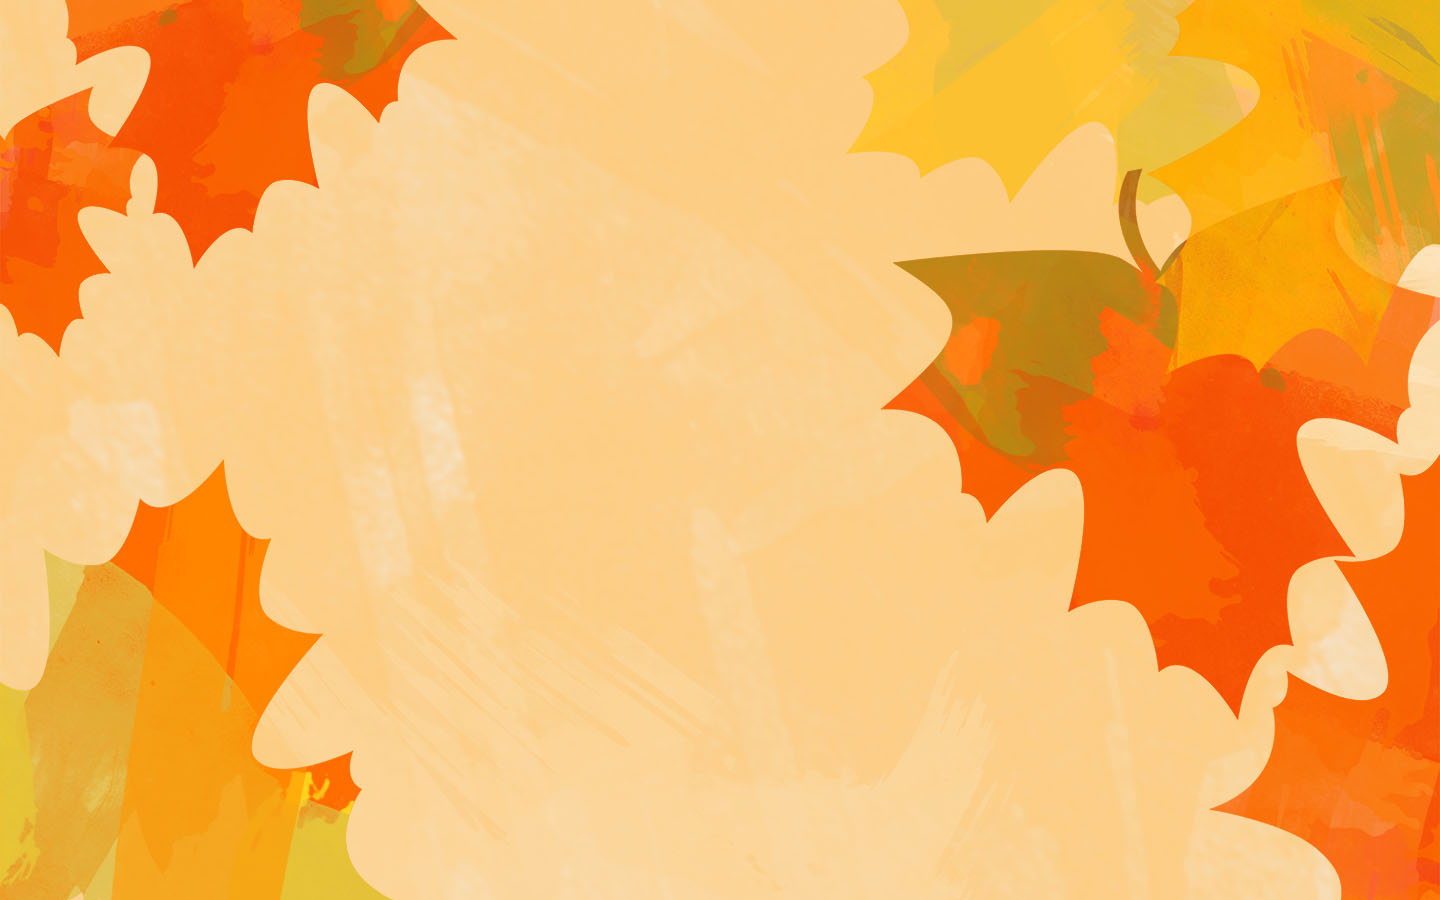 Cute Fall Iphone Wallpapers October 2012 Desktop Iphone Amp Ipad Calendar Wallpaper